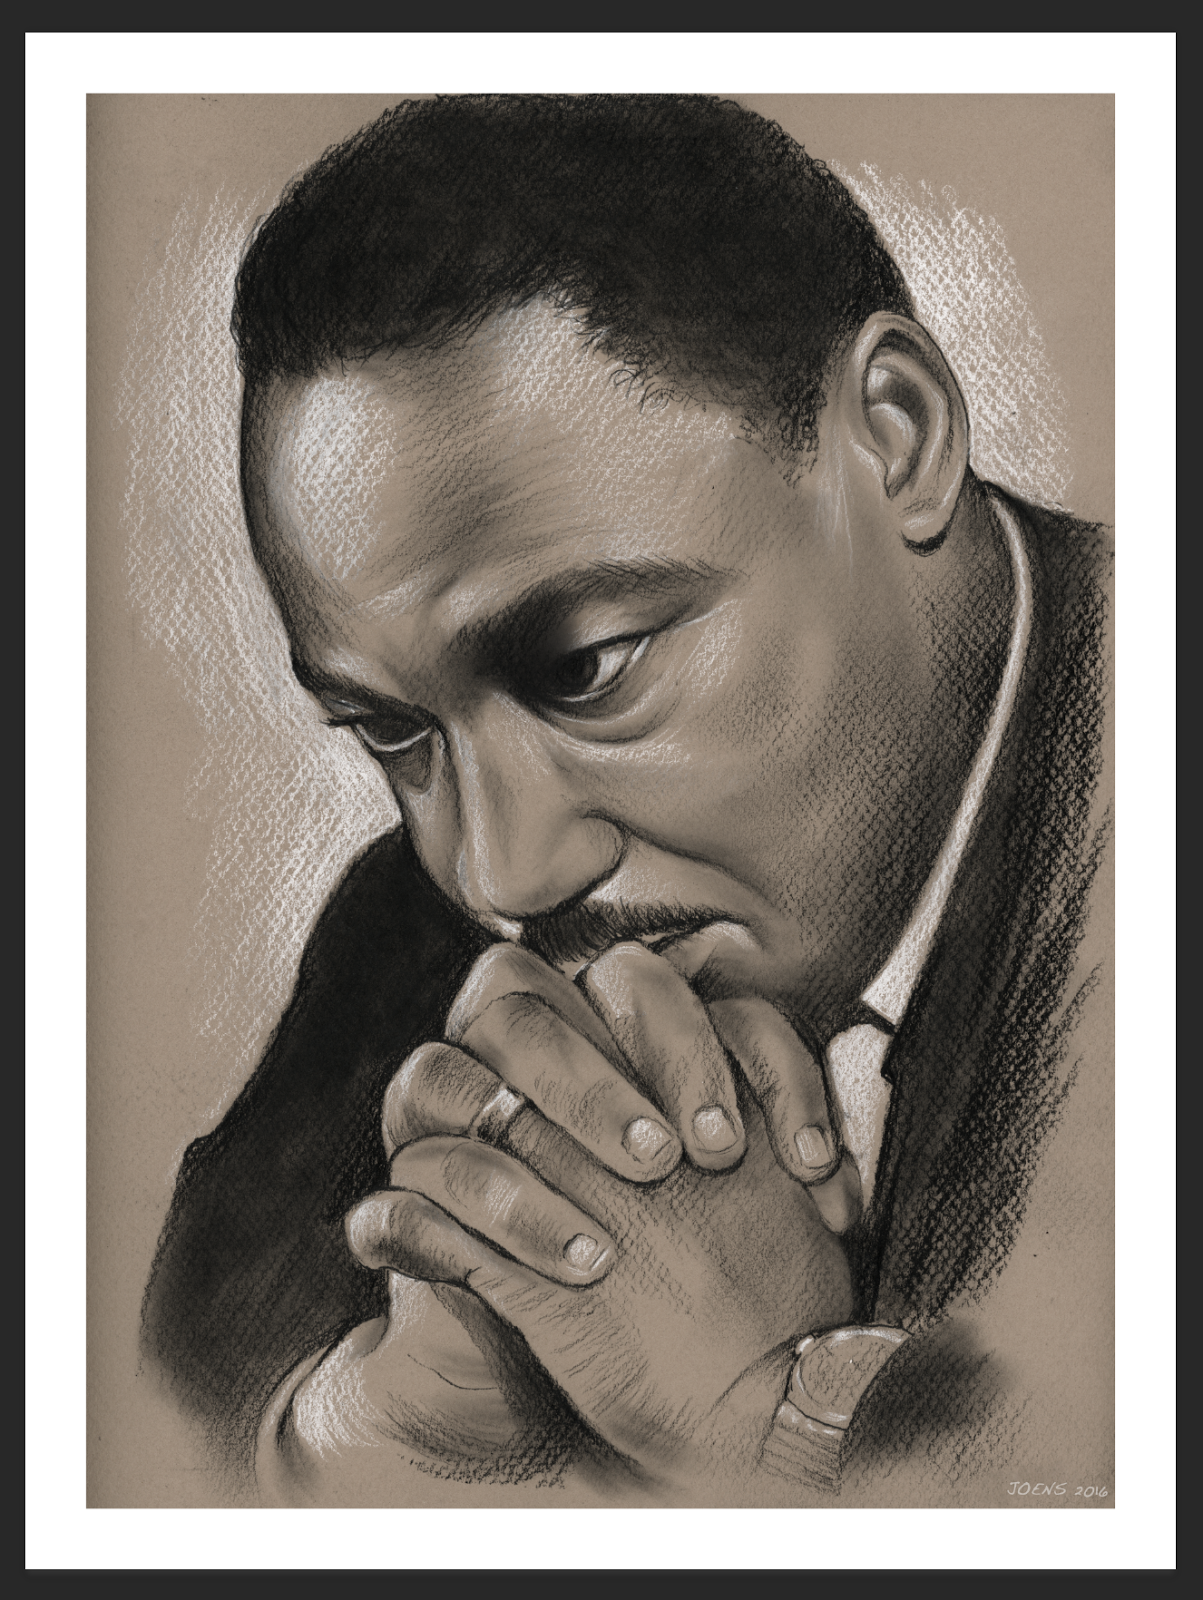 This is a photo of Sly Drawing Of Martin Luther King